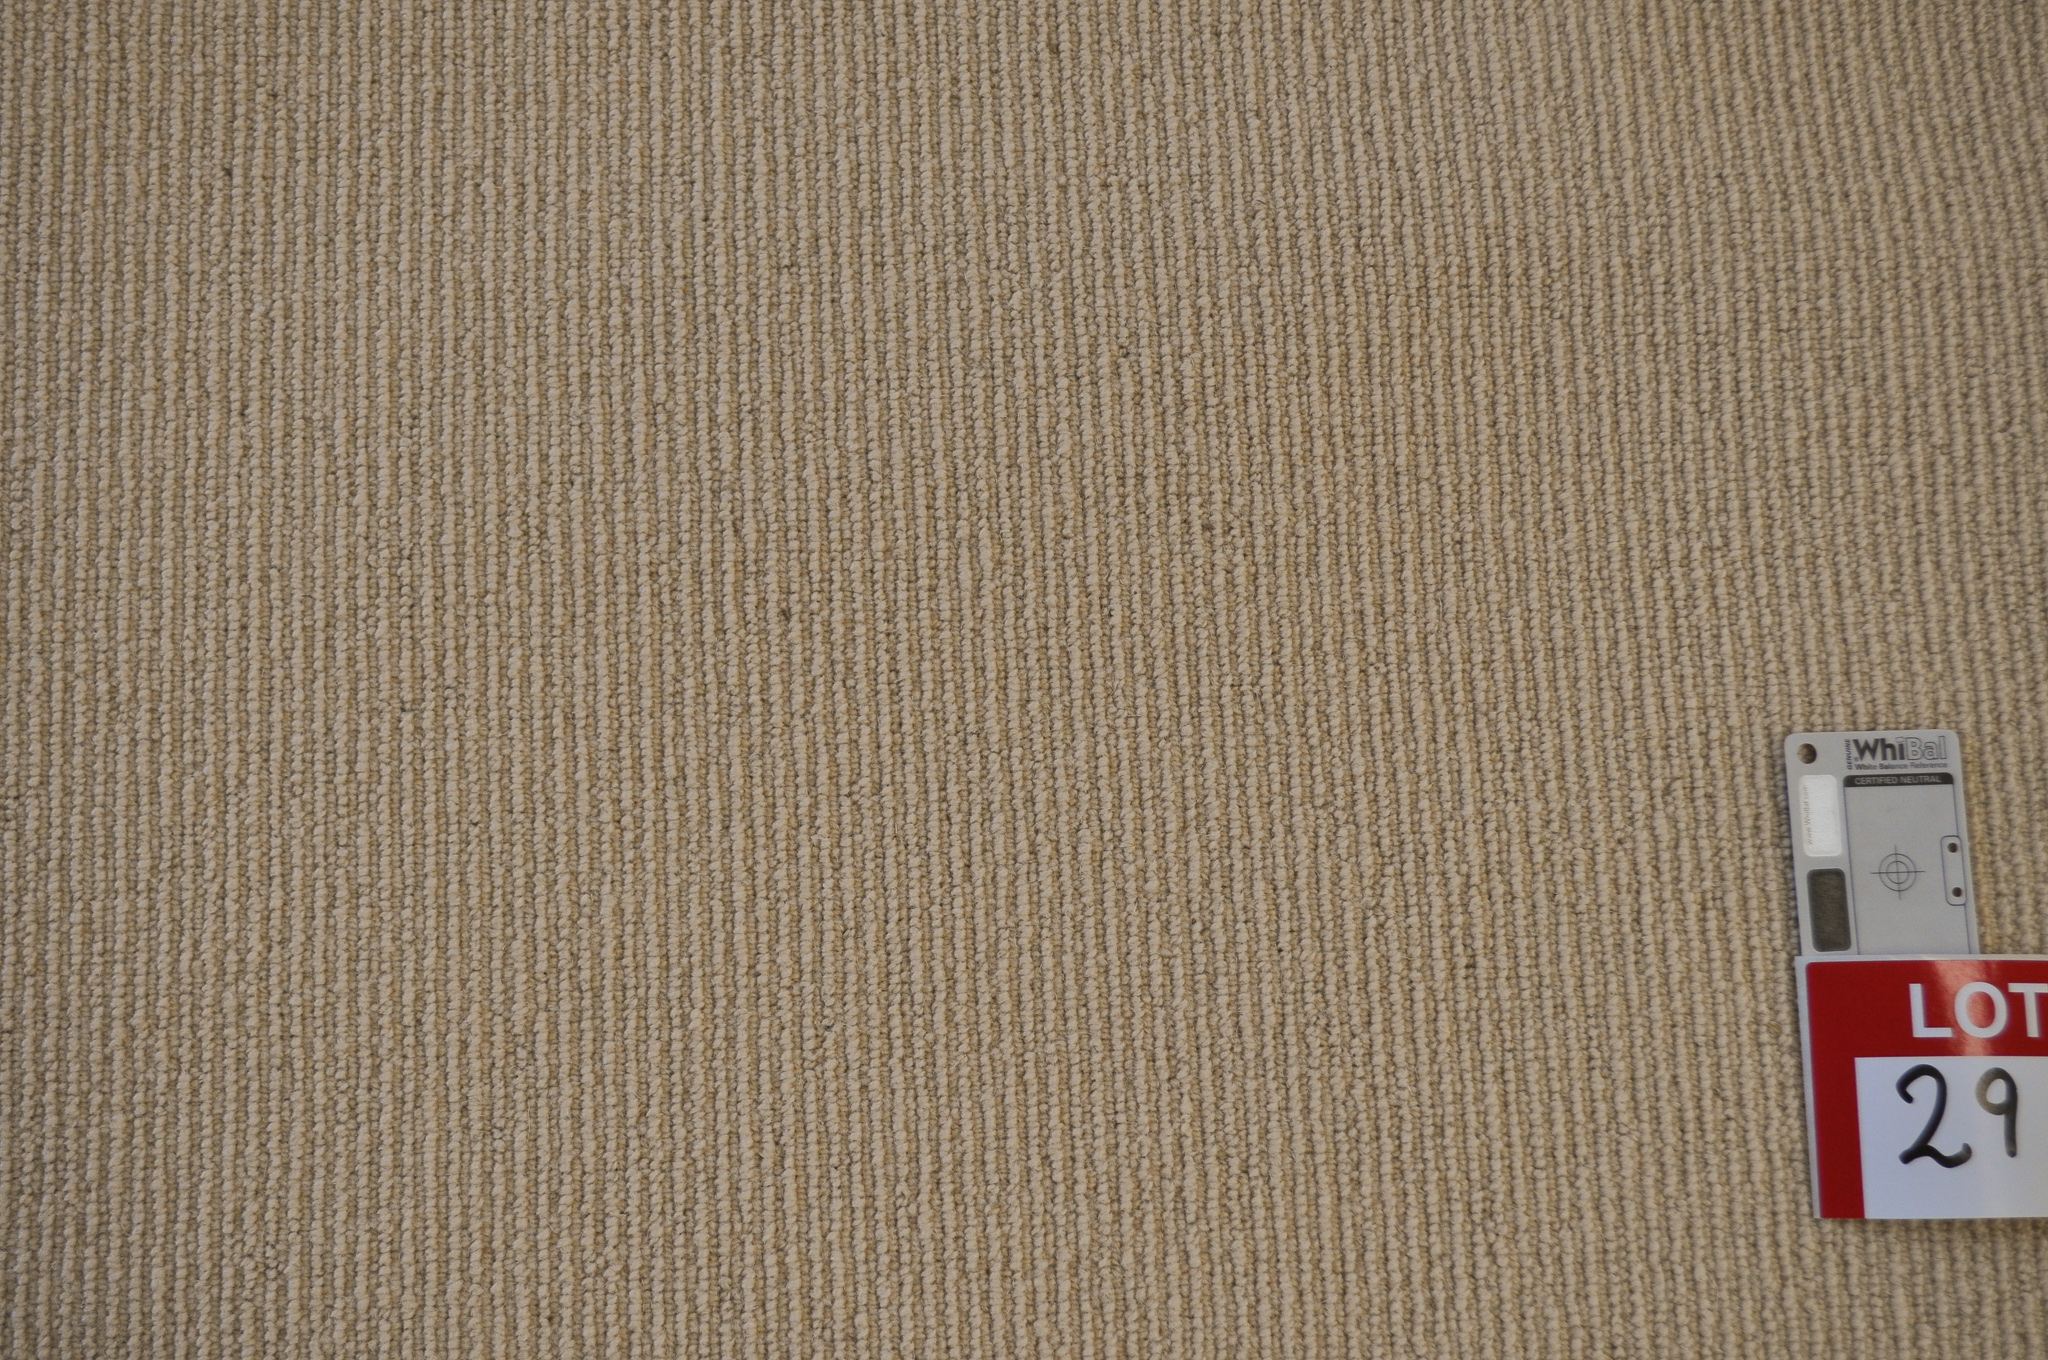 yellow beige colored, sisal loop pile roll of carpet on sale at Concord Floors, it being a remnant roll in Concord Floor's warehouse.